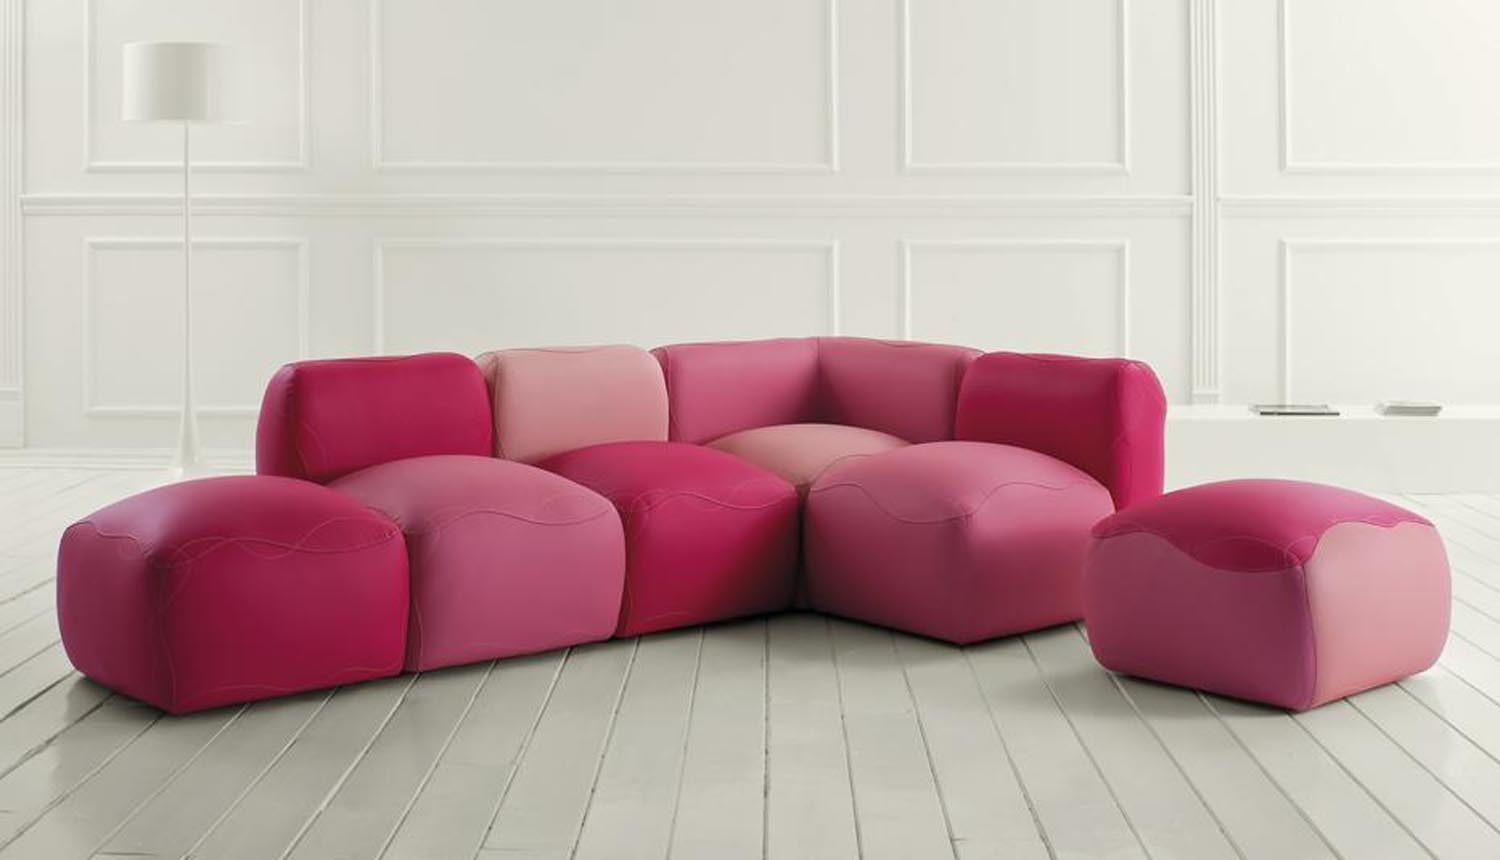 Amazing ... Multi Hued Modular Sofa Adds A Sense Of Fun To Any Room